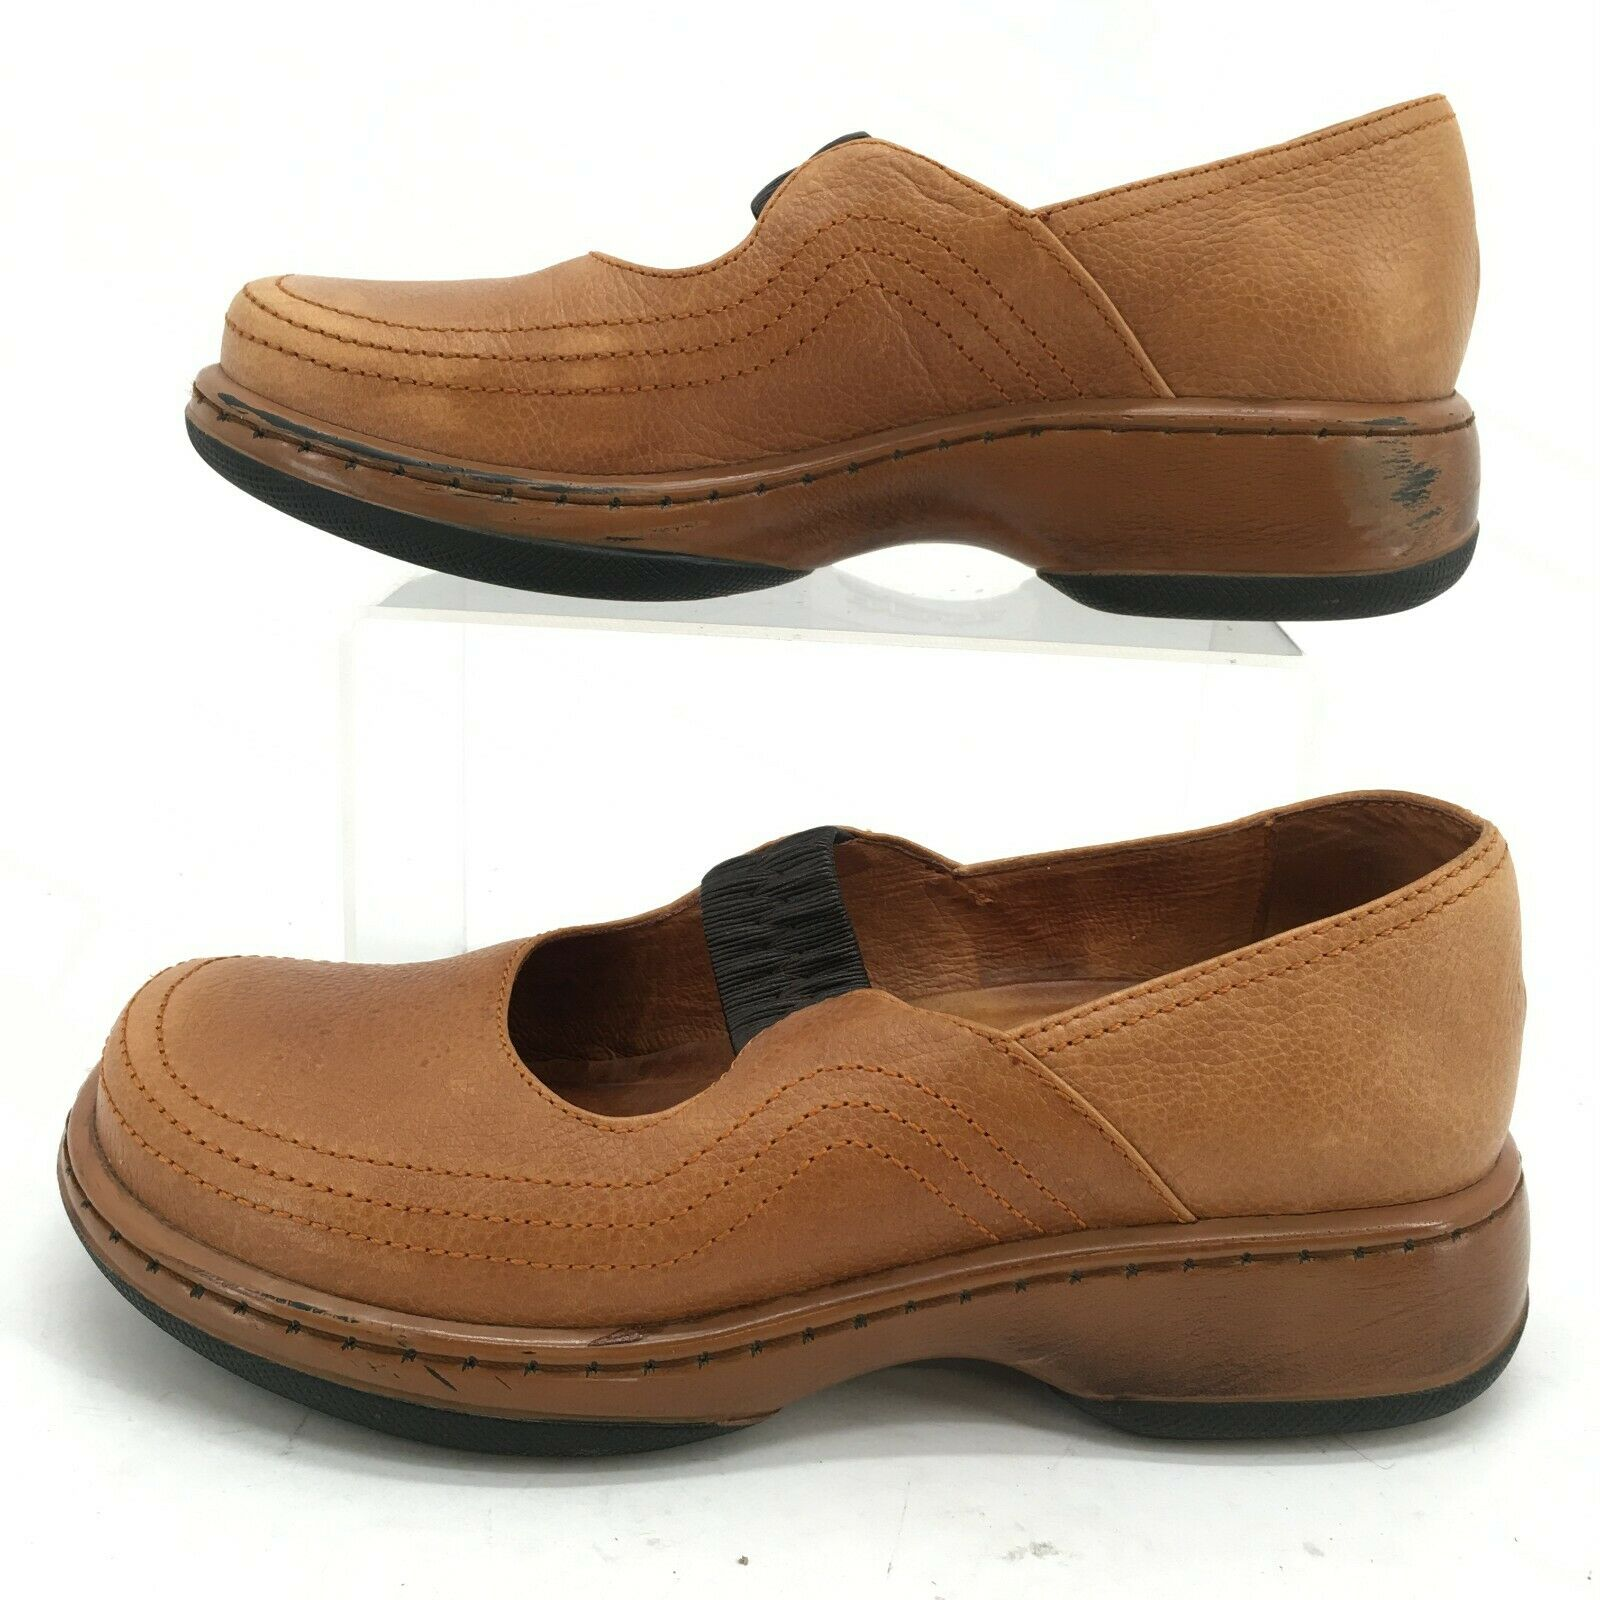 Dansko Mary Jane Clogs Womens 37 Tan Leather Slip On Comfort Shoes Round Toe